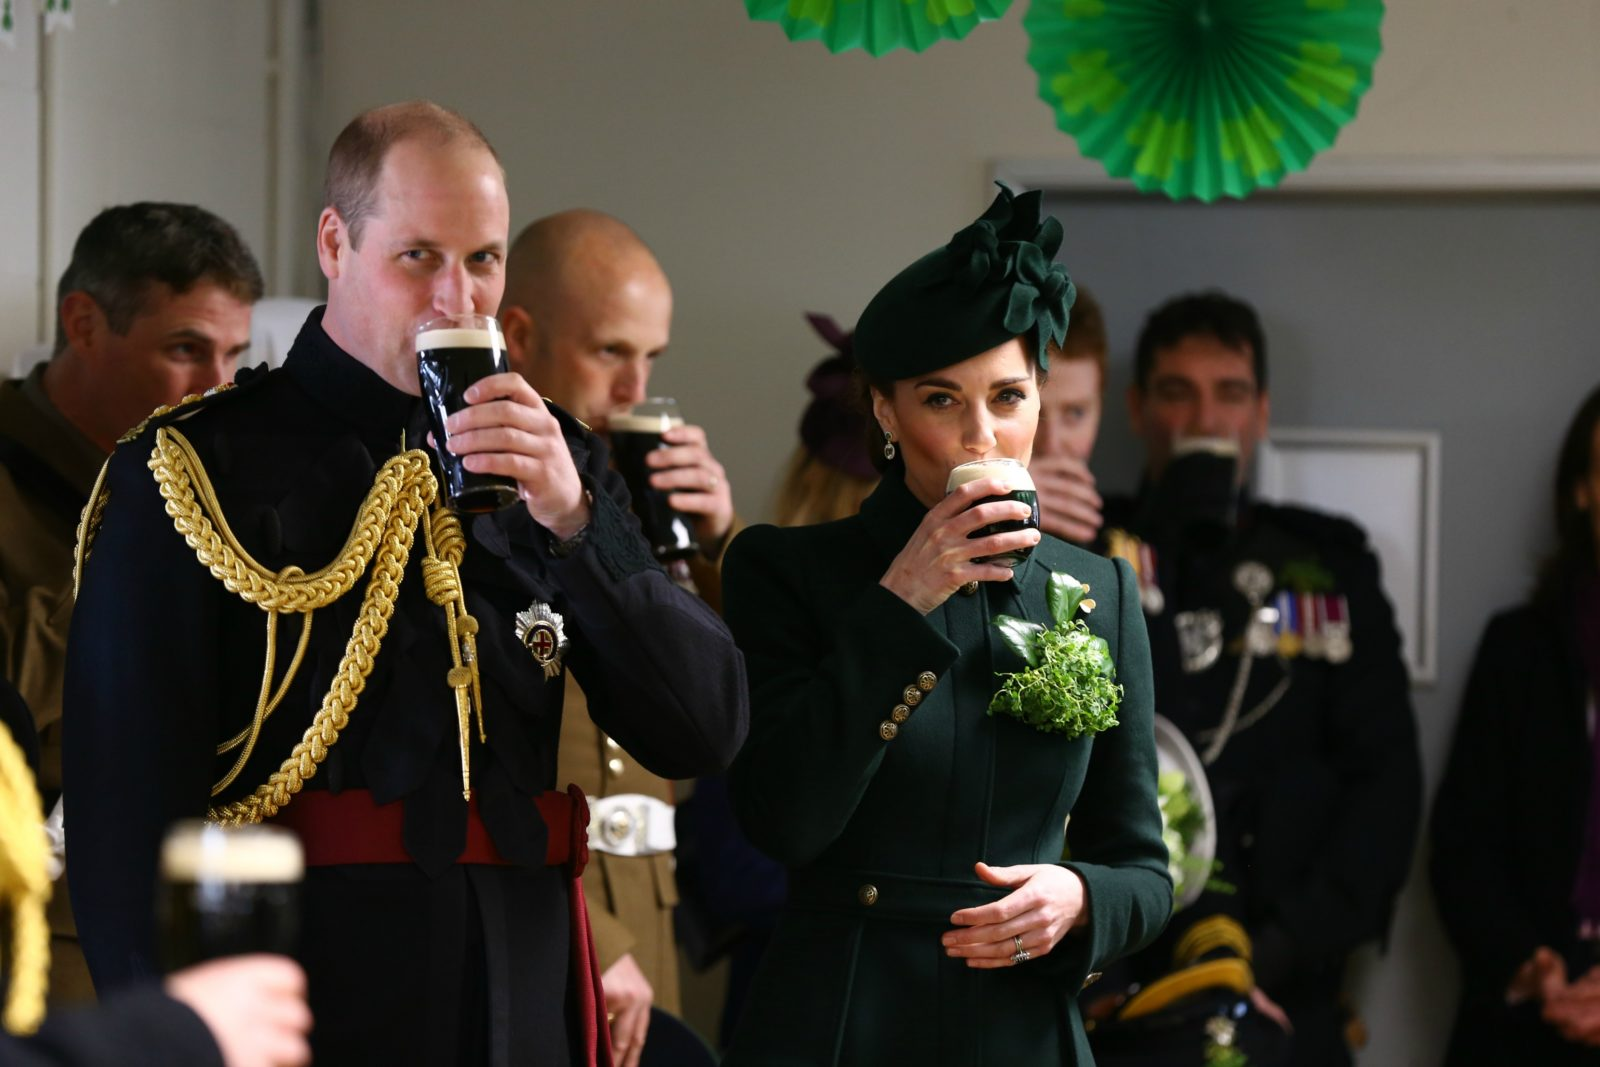 The pair indulged in a sip of Guinness. Source: Getty.